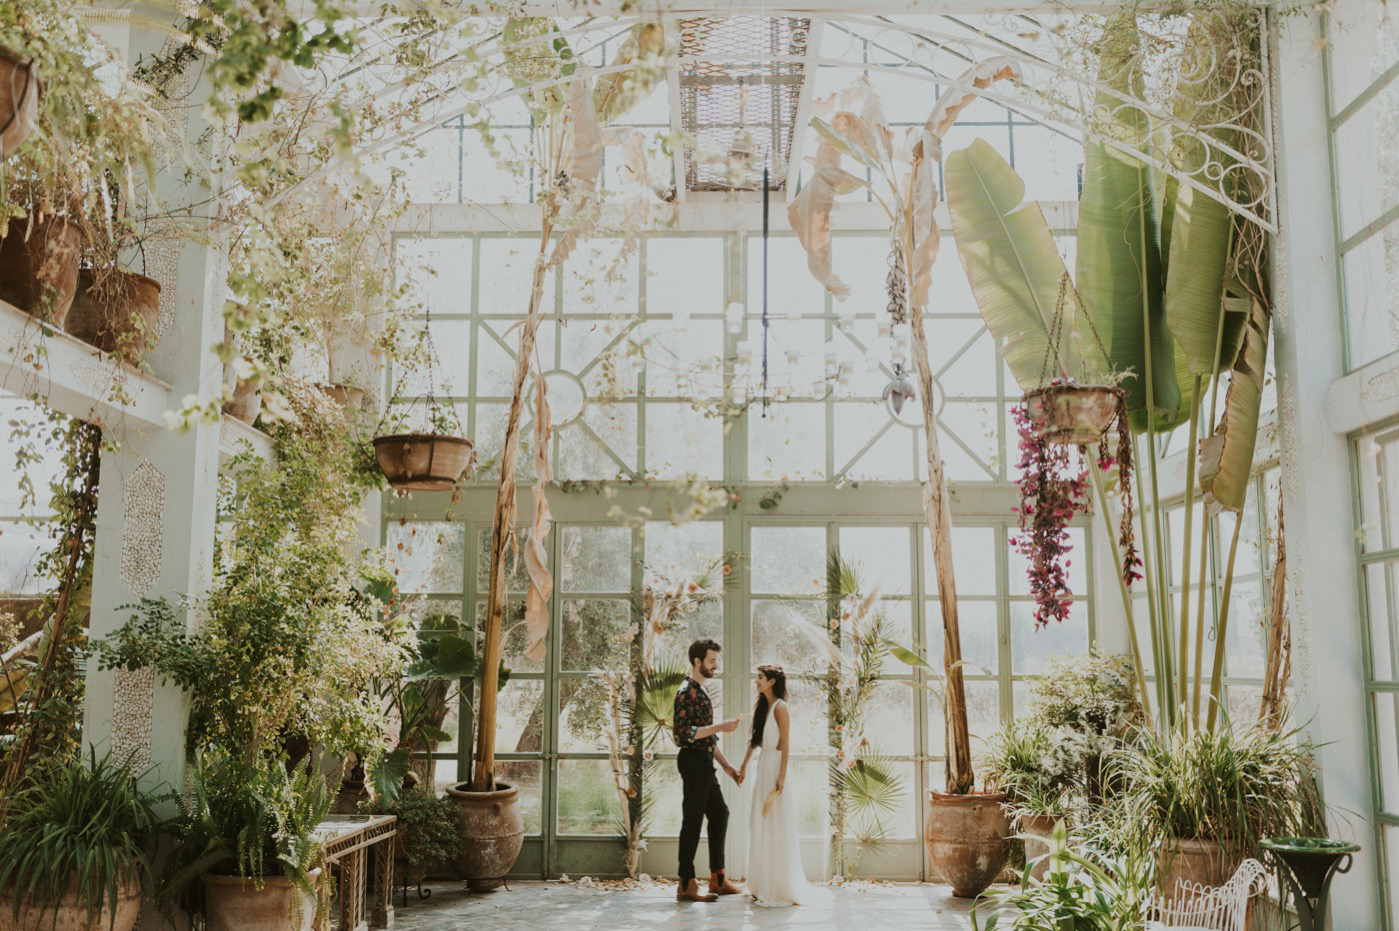 An Intimate Elopement in Marrakech, Morocco - Beldhi Country Club